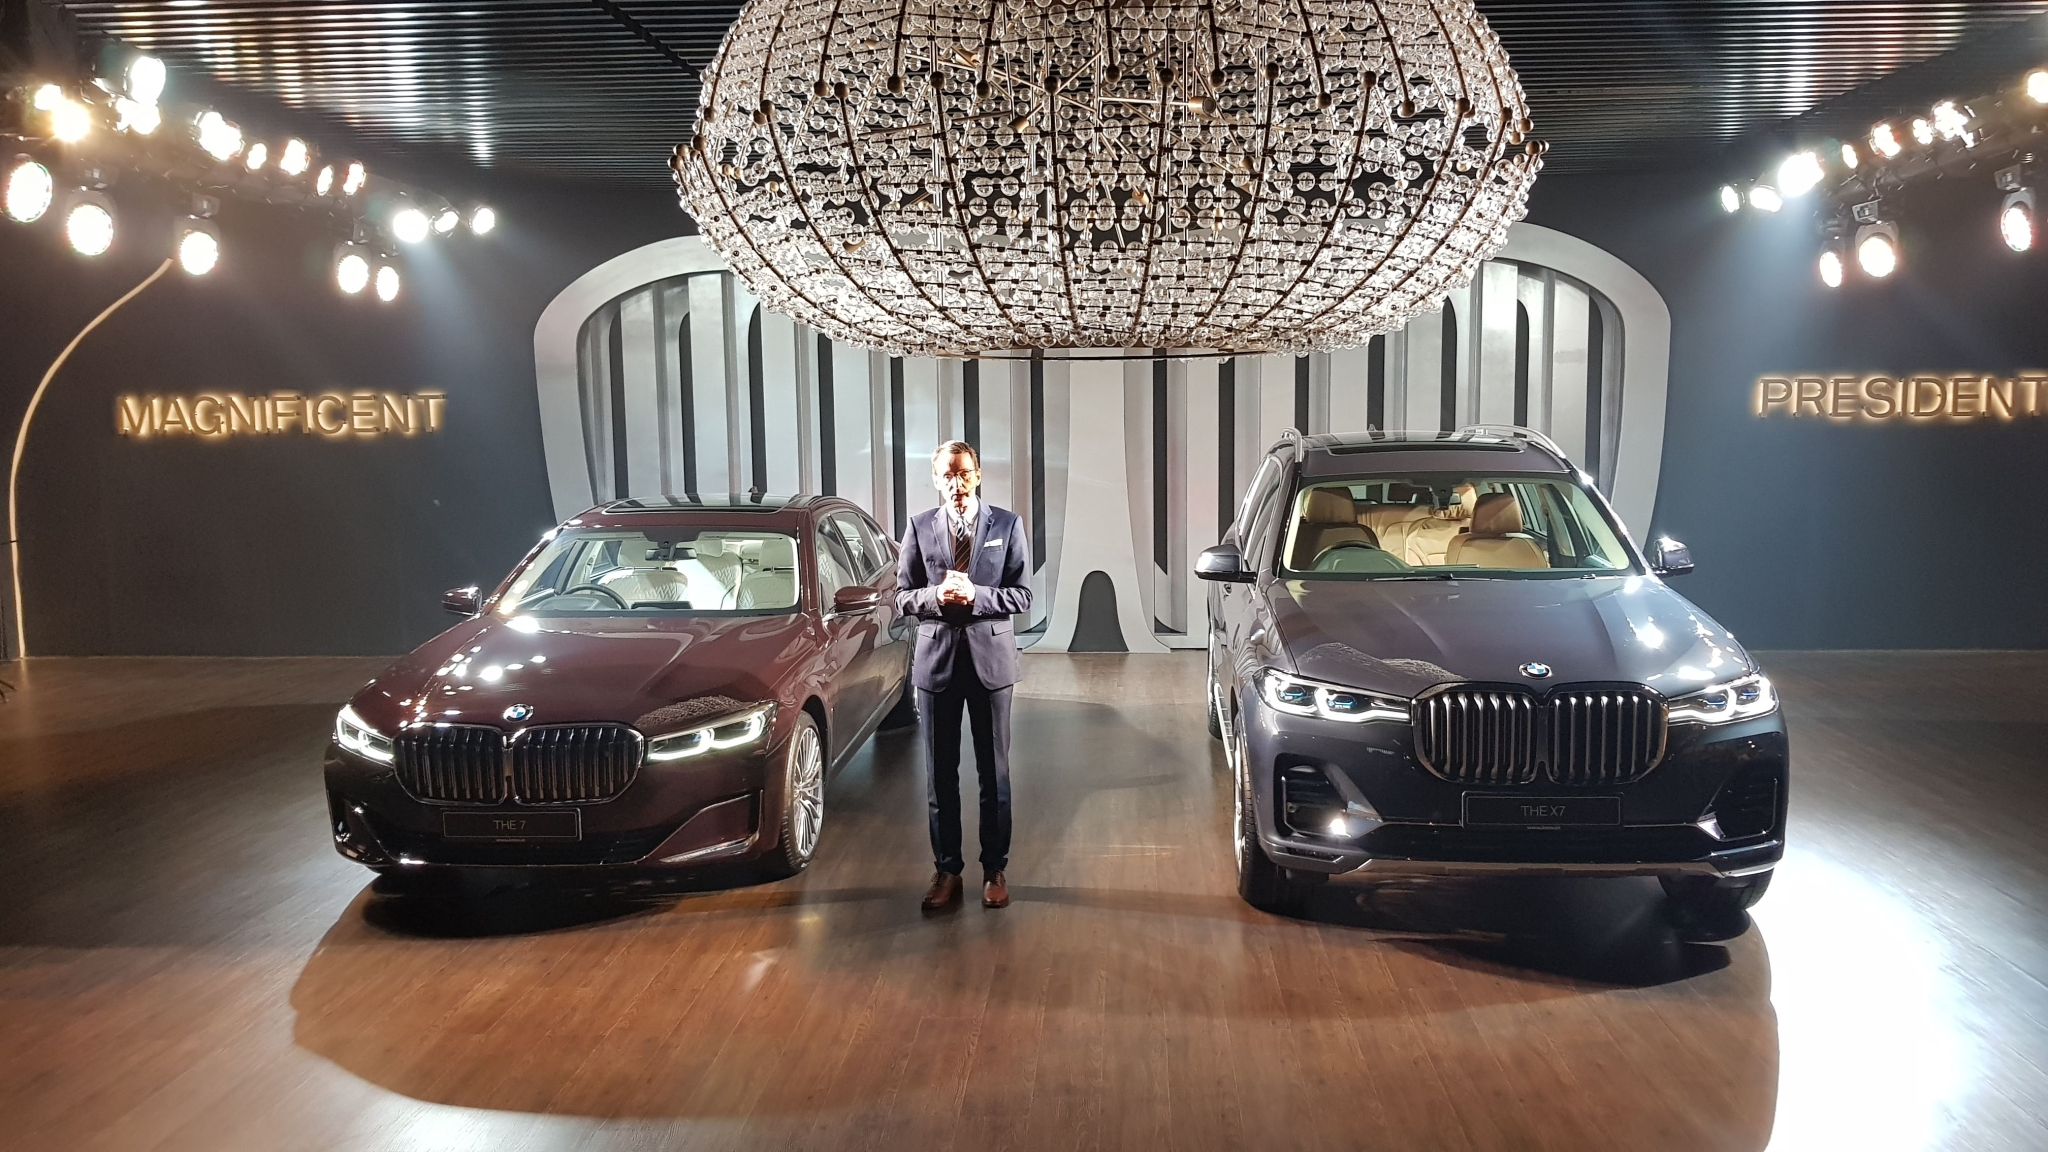 BMW 7 Series and X7 SUV Launched in India, Includes Hybrid Model